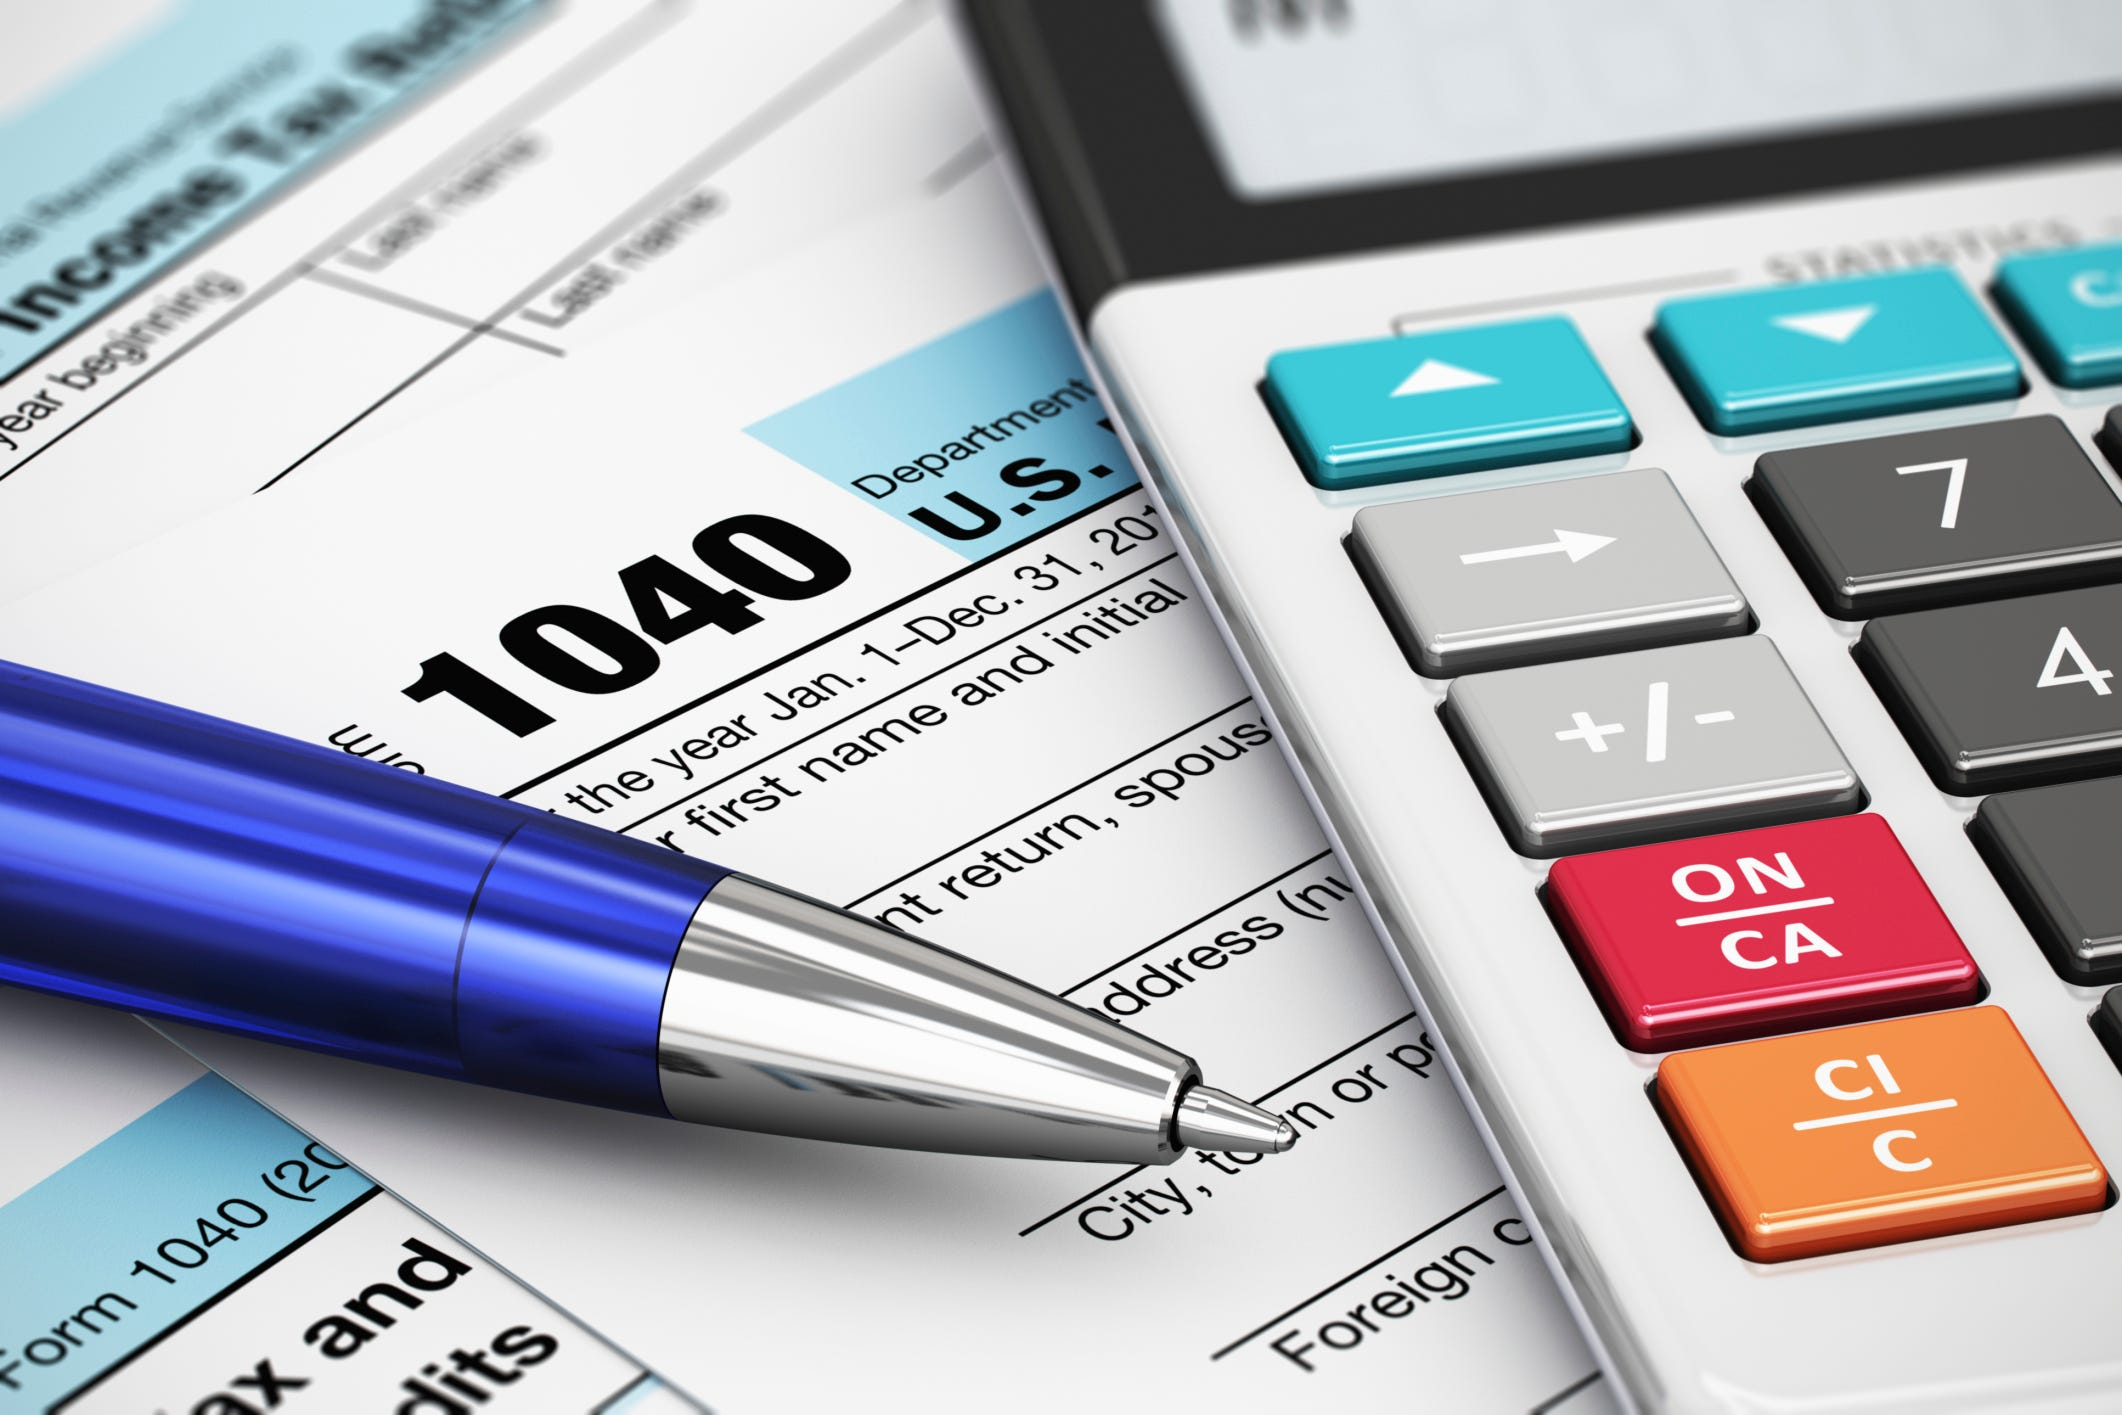 Tax saving tips up in air as Congress mulls changes